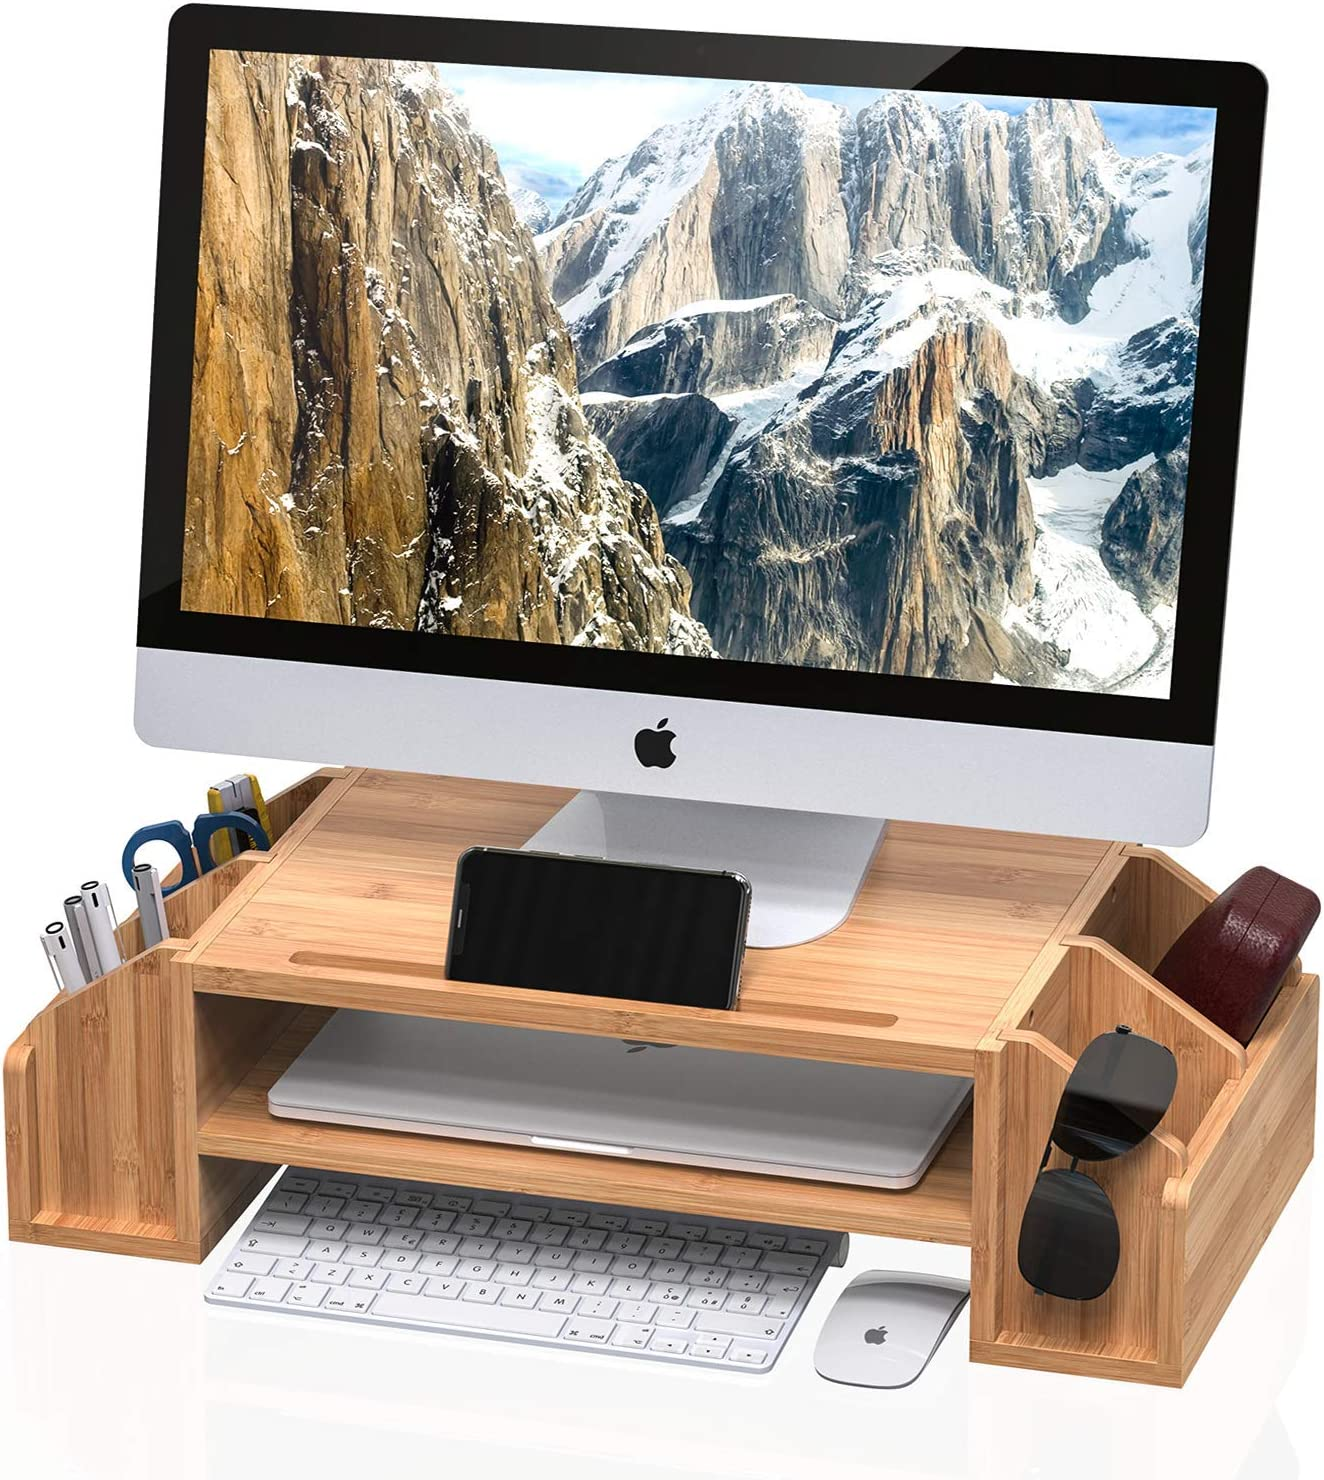 WELL WENG Bamboo 2-TIier Monitor Riser with Adjustable Storage Organizer Desktop Stand for iMac,Printer,Notebook,Xbox one,PS4 (MR3-SG))